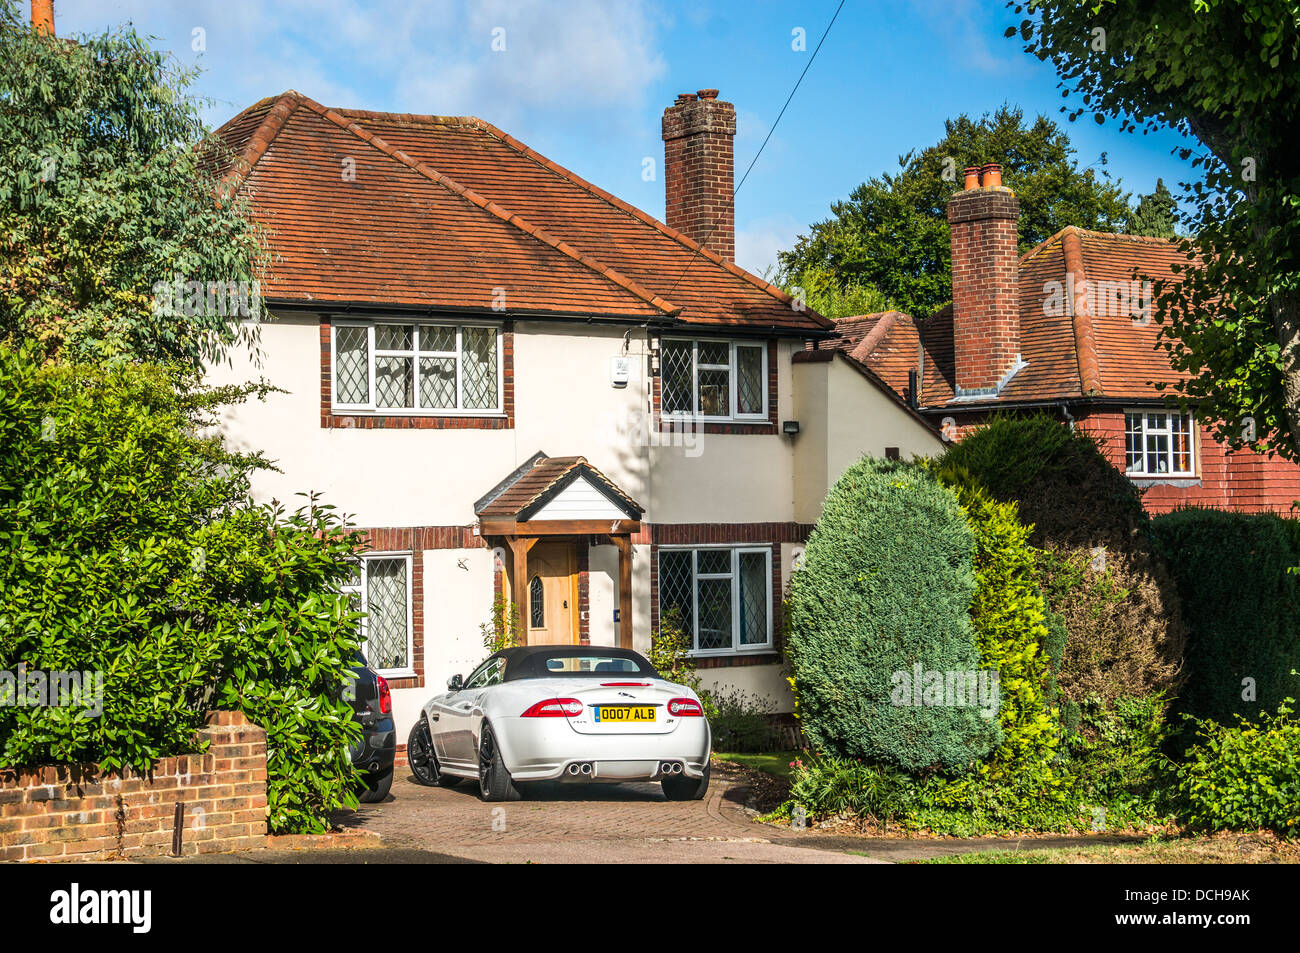 An upmarket period detached house with car parked outside, in Surrey, England, UK. Stock Photo